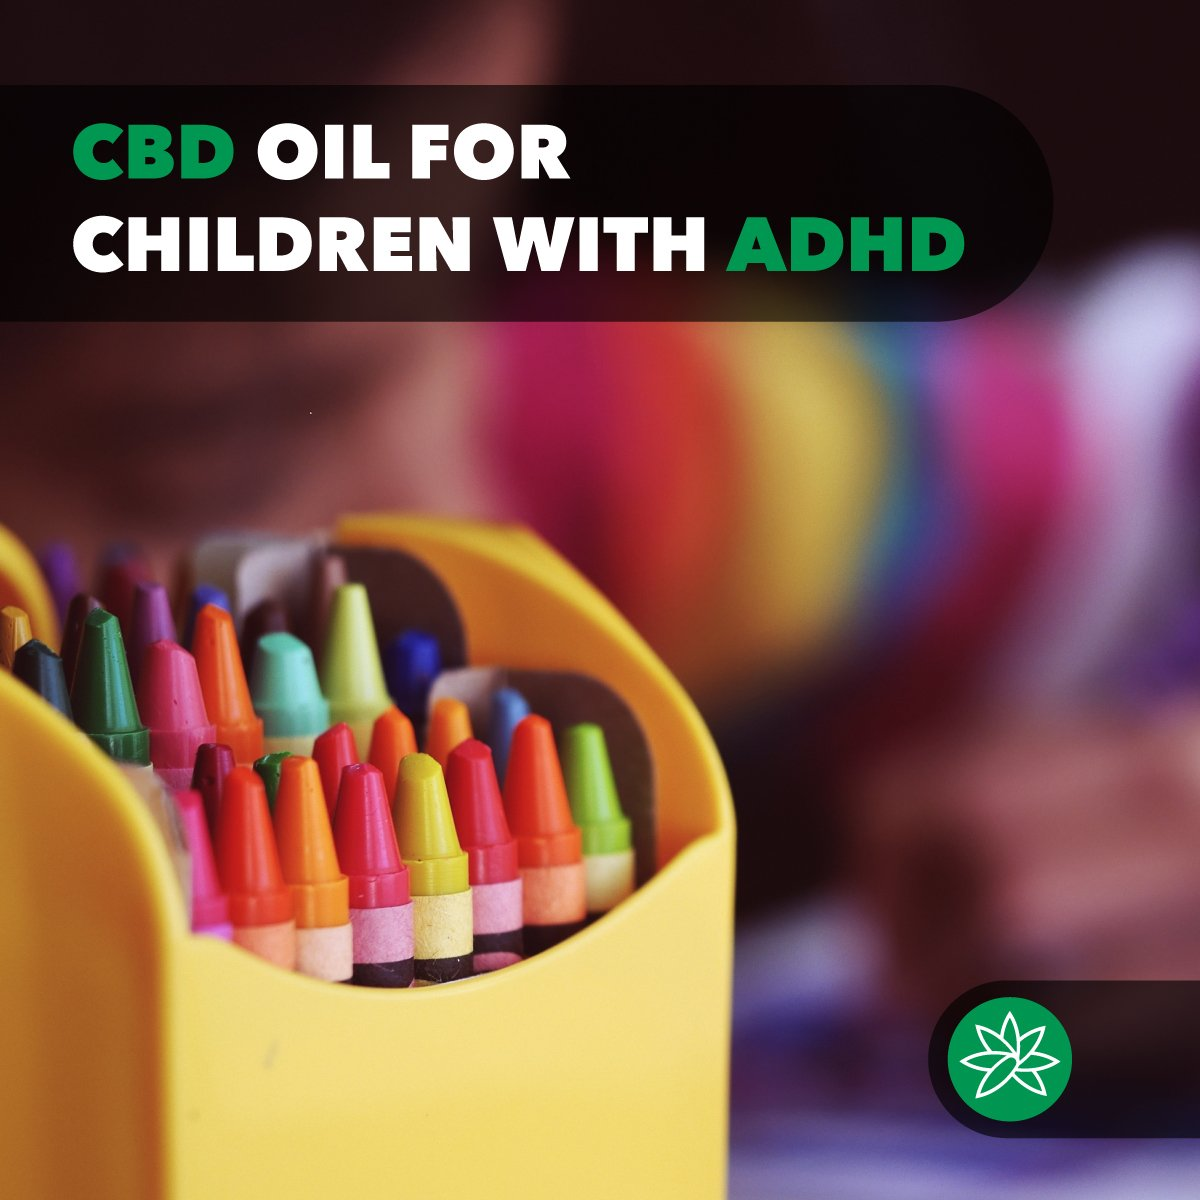 CBD oil for children with ADHD